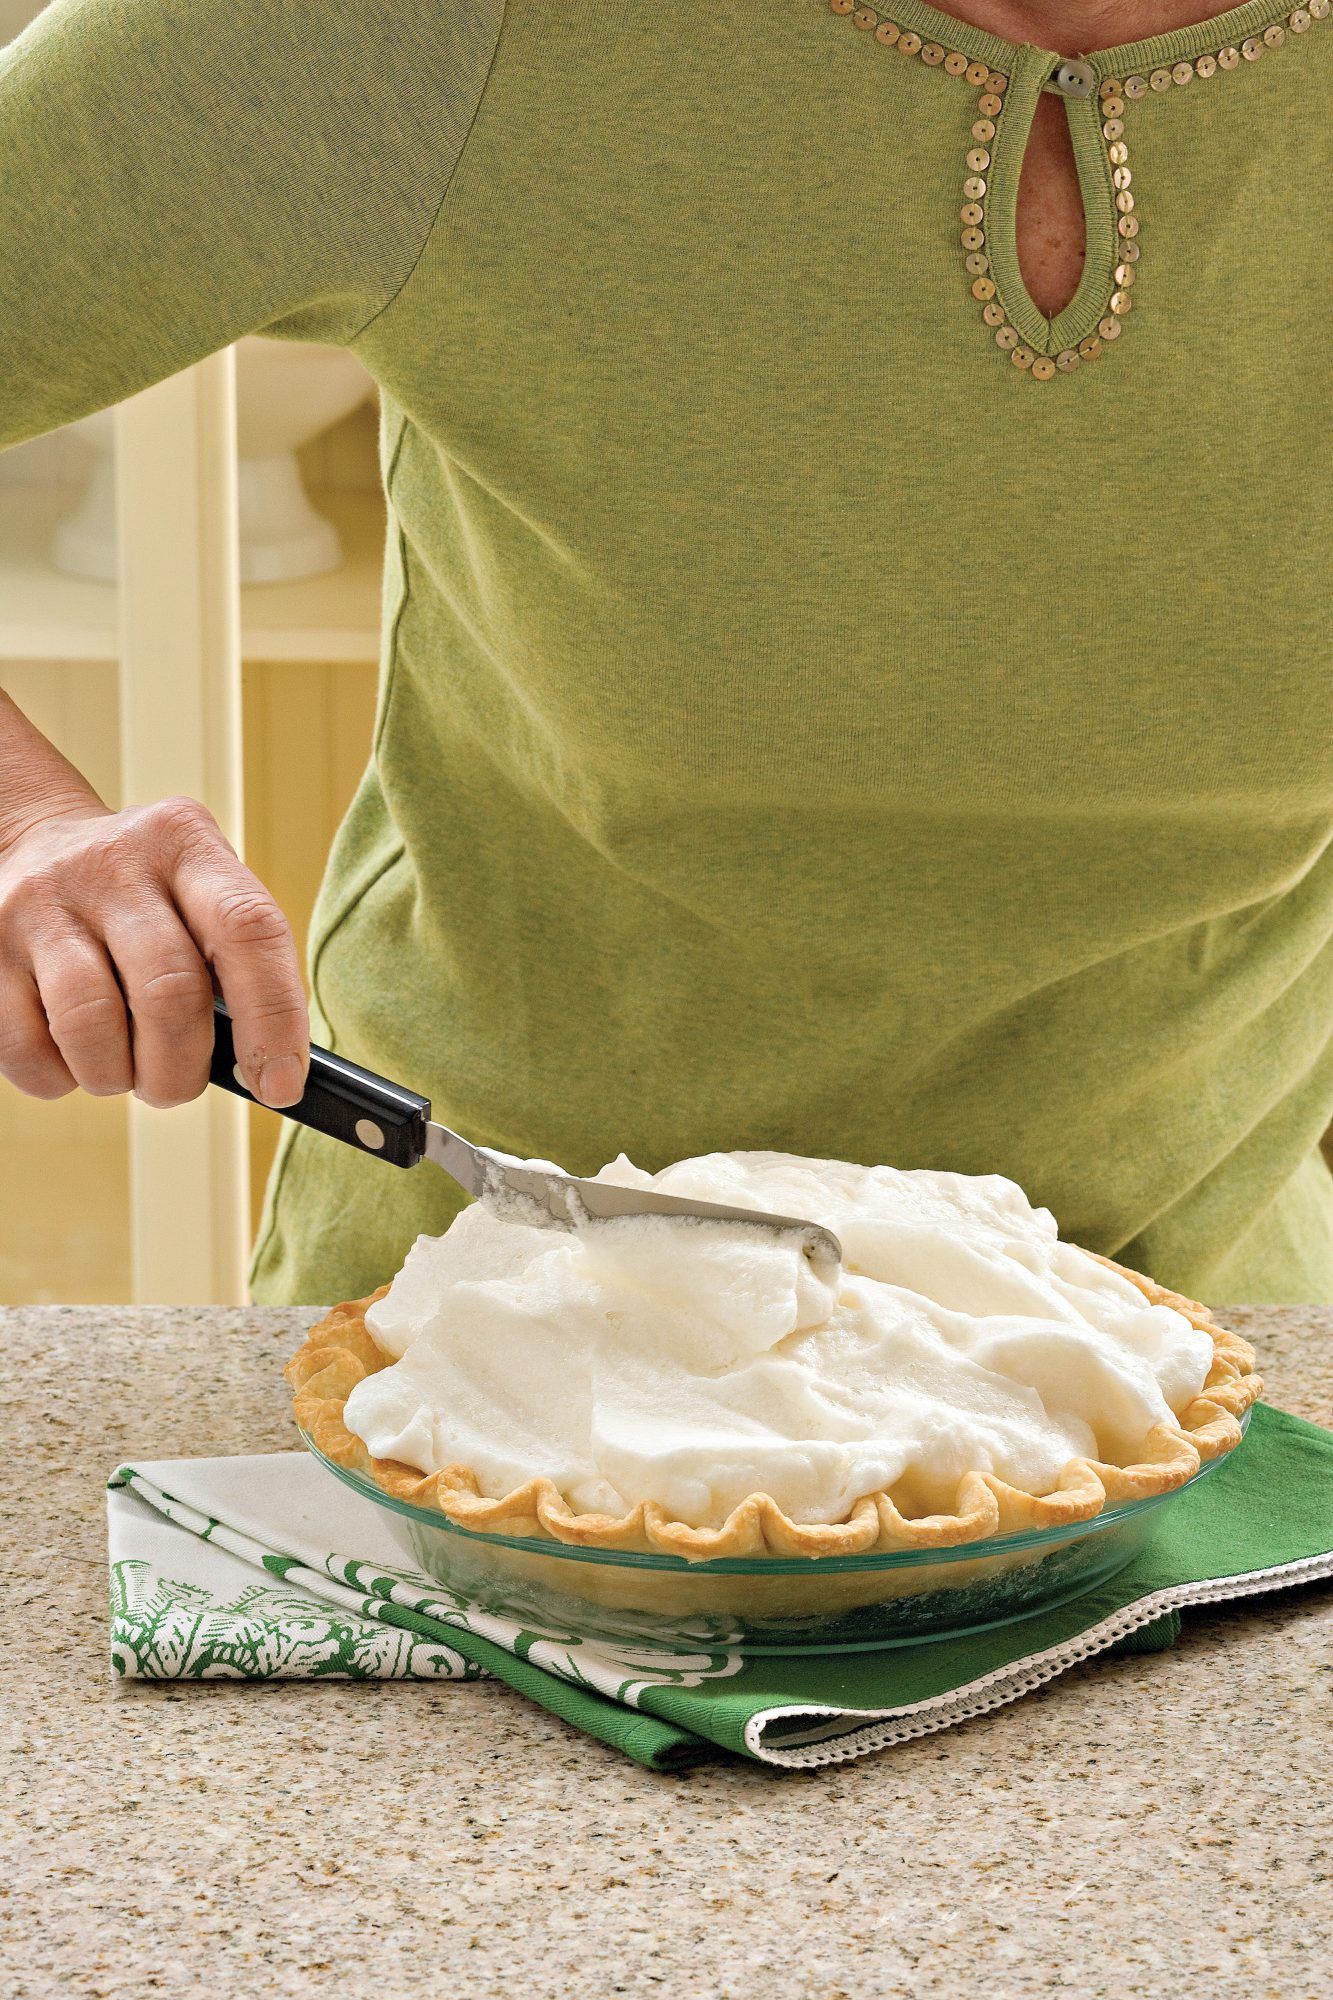 How to Make Meringue Pie